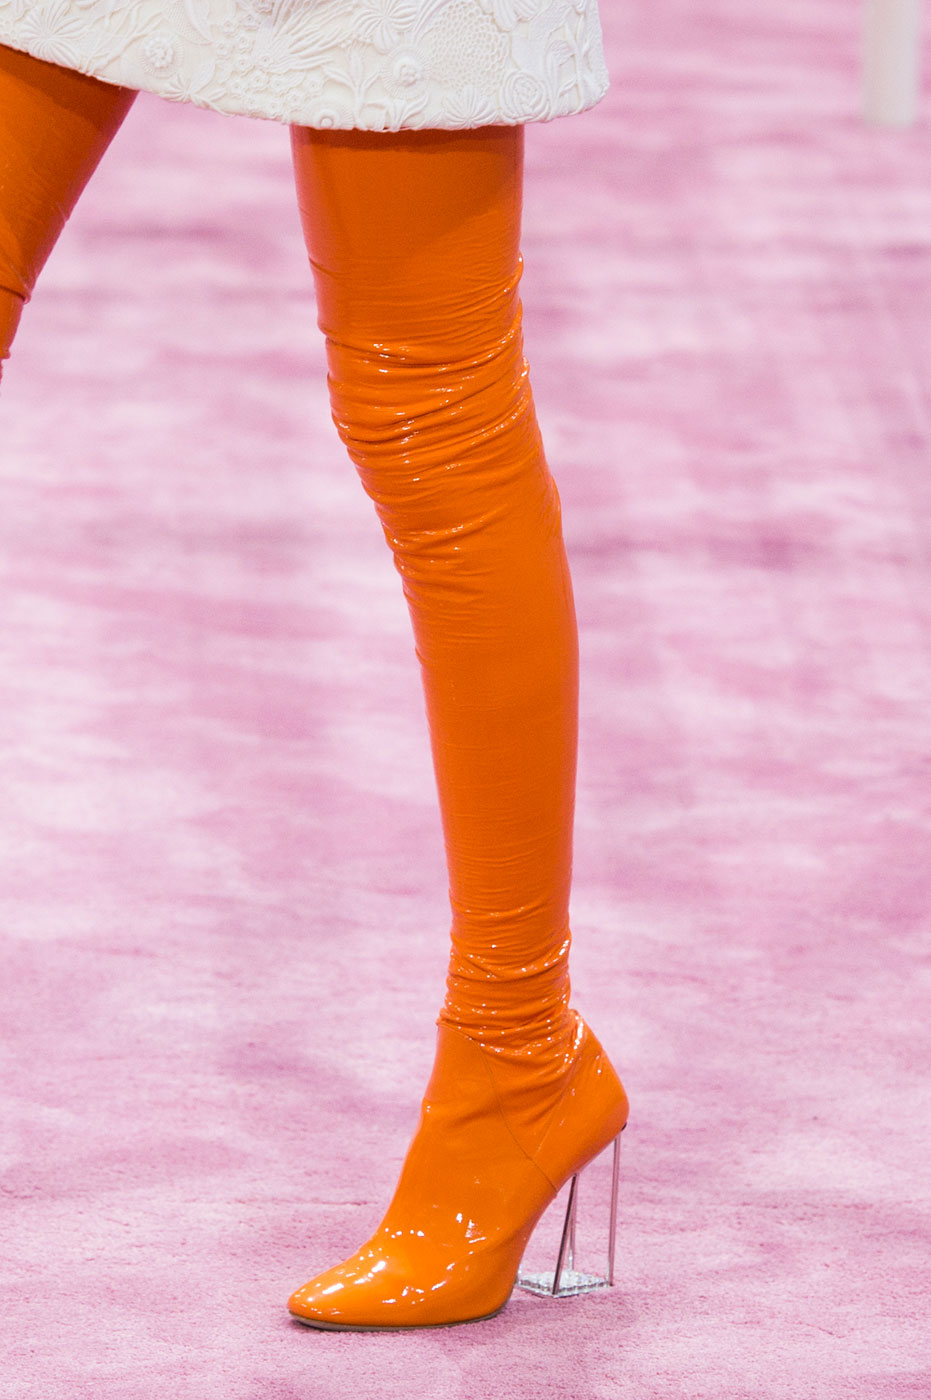 Christian-Dior-fashion-runway-show-close-ups-haute-couture-paris-spring-summer-2015-the-impression-201